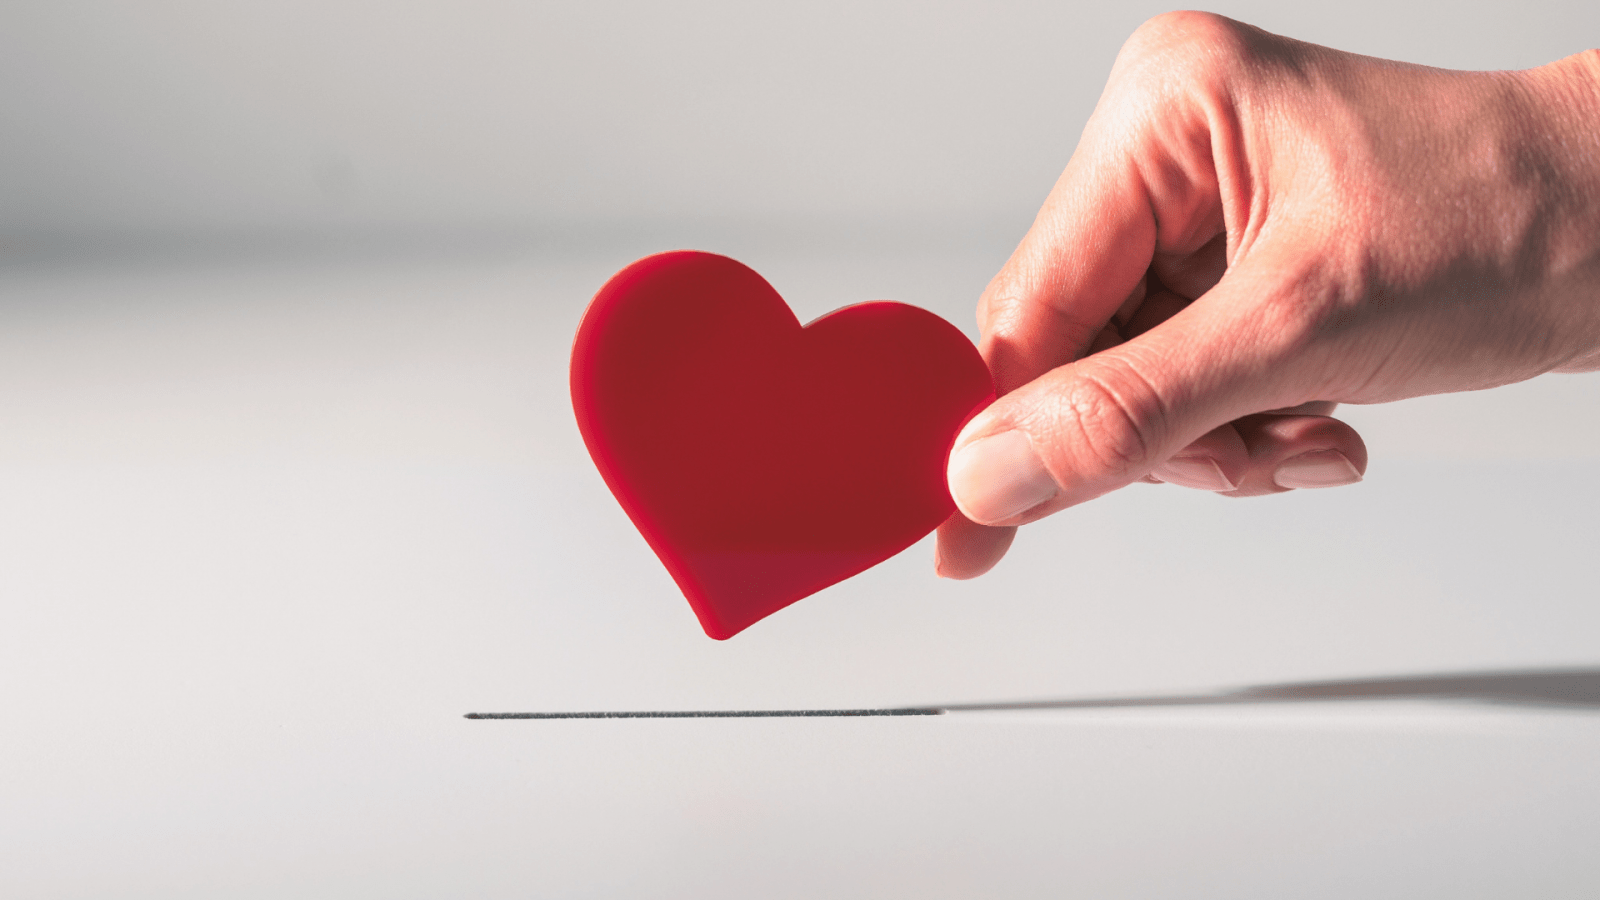 hand putting red heart into box